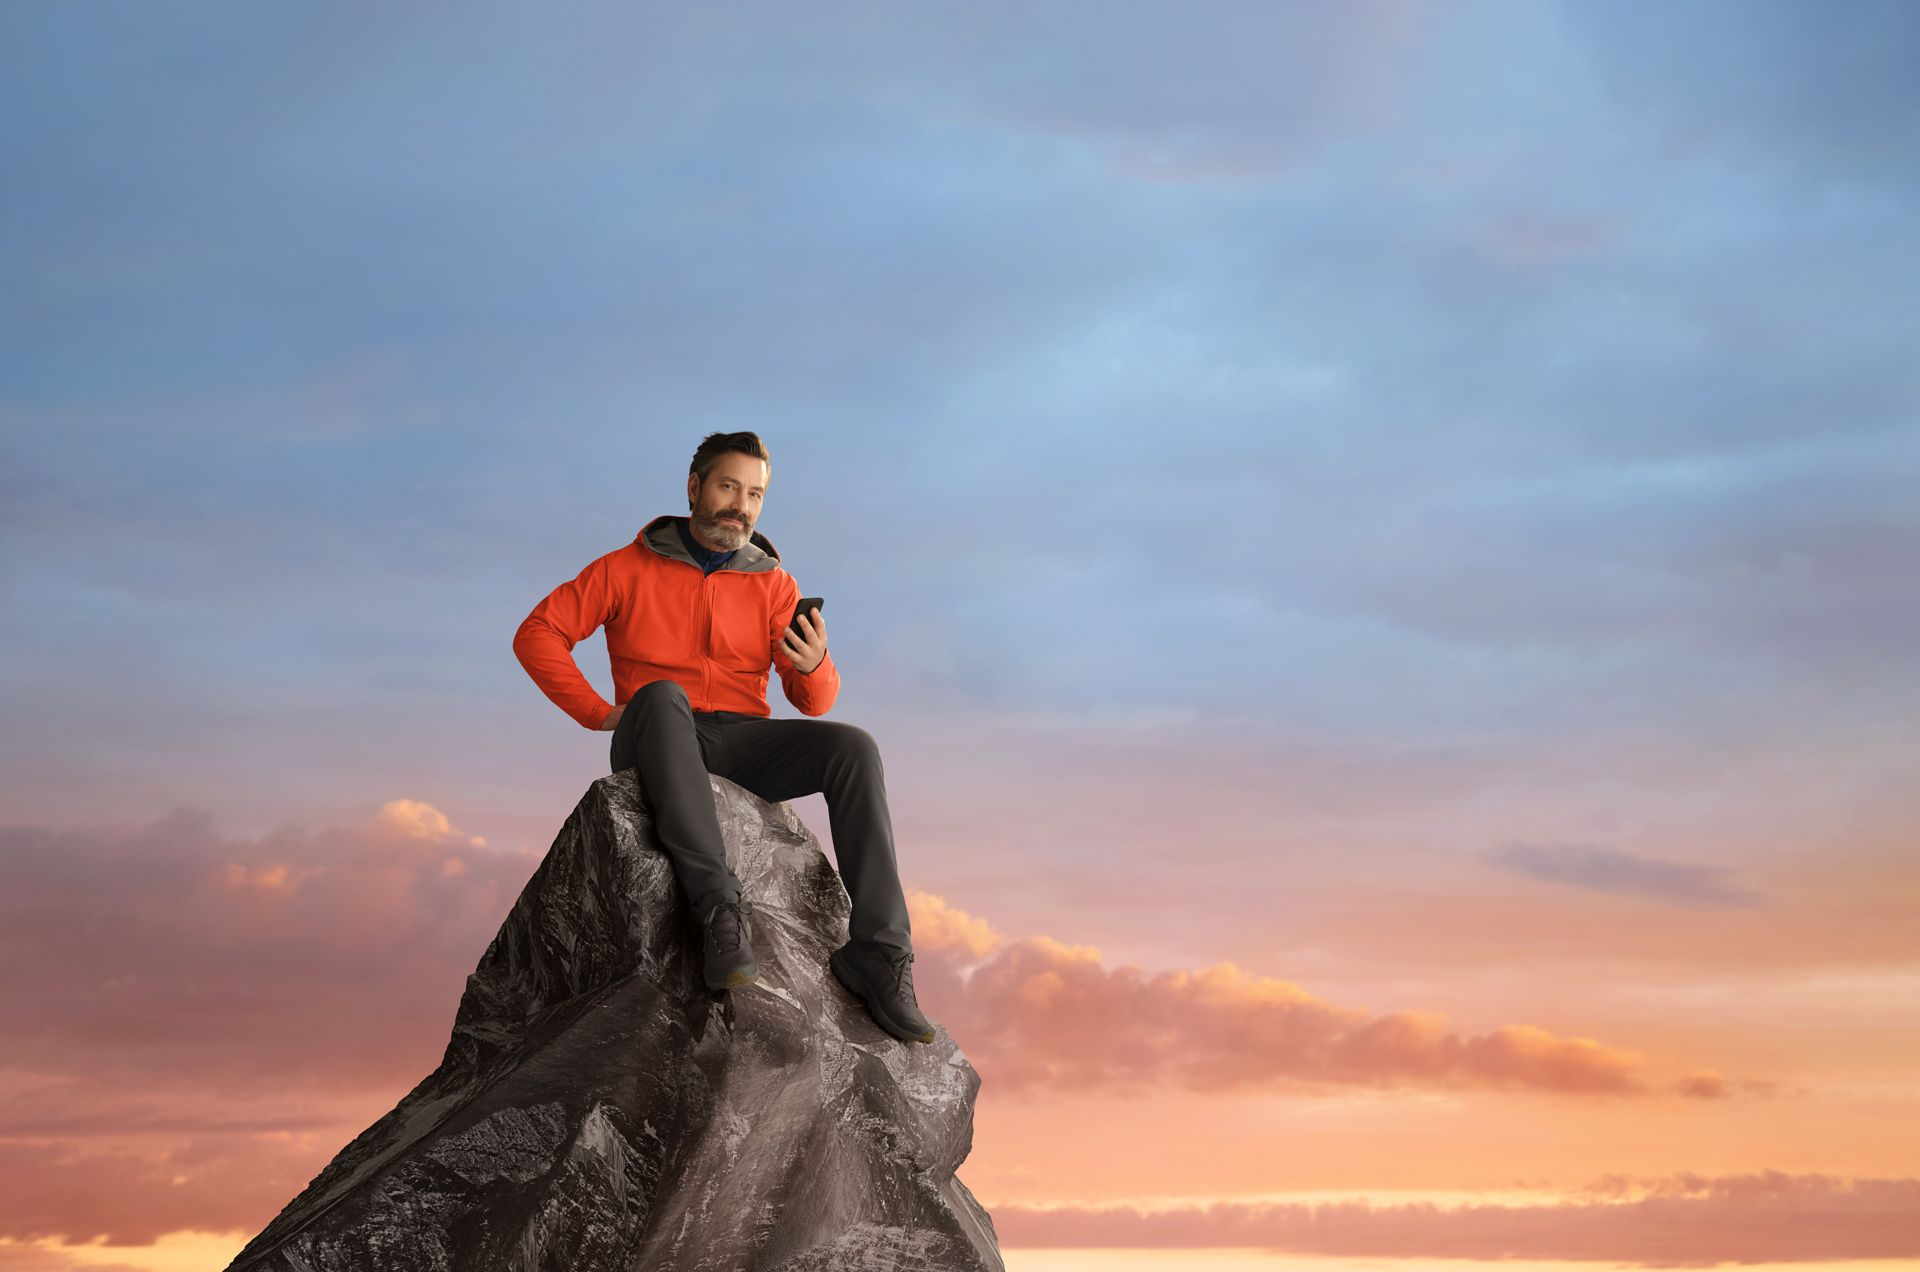 A man is proudly sitting at the top of a mountain, his cellphone in his hand. The sky is a beautiful peach sunset.